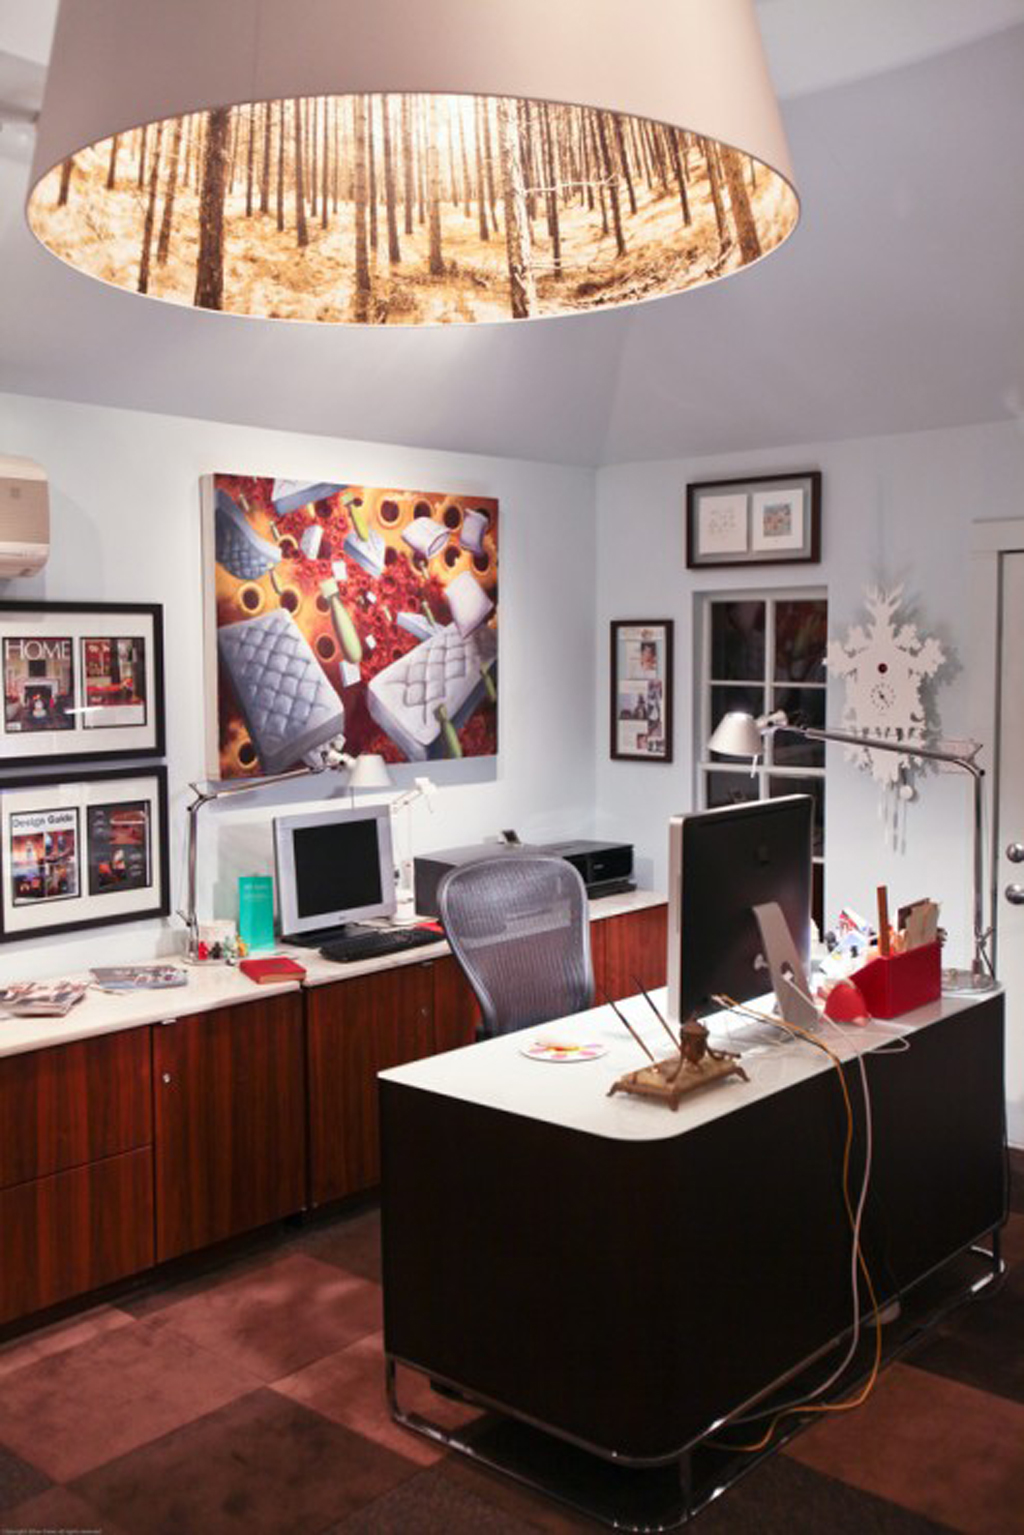 30 functional and creative home office ideas